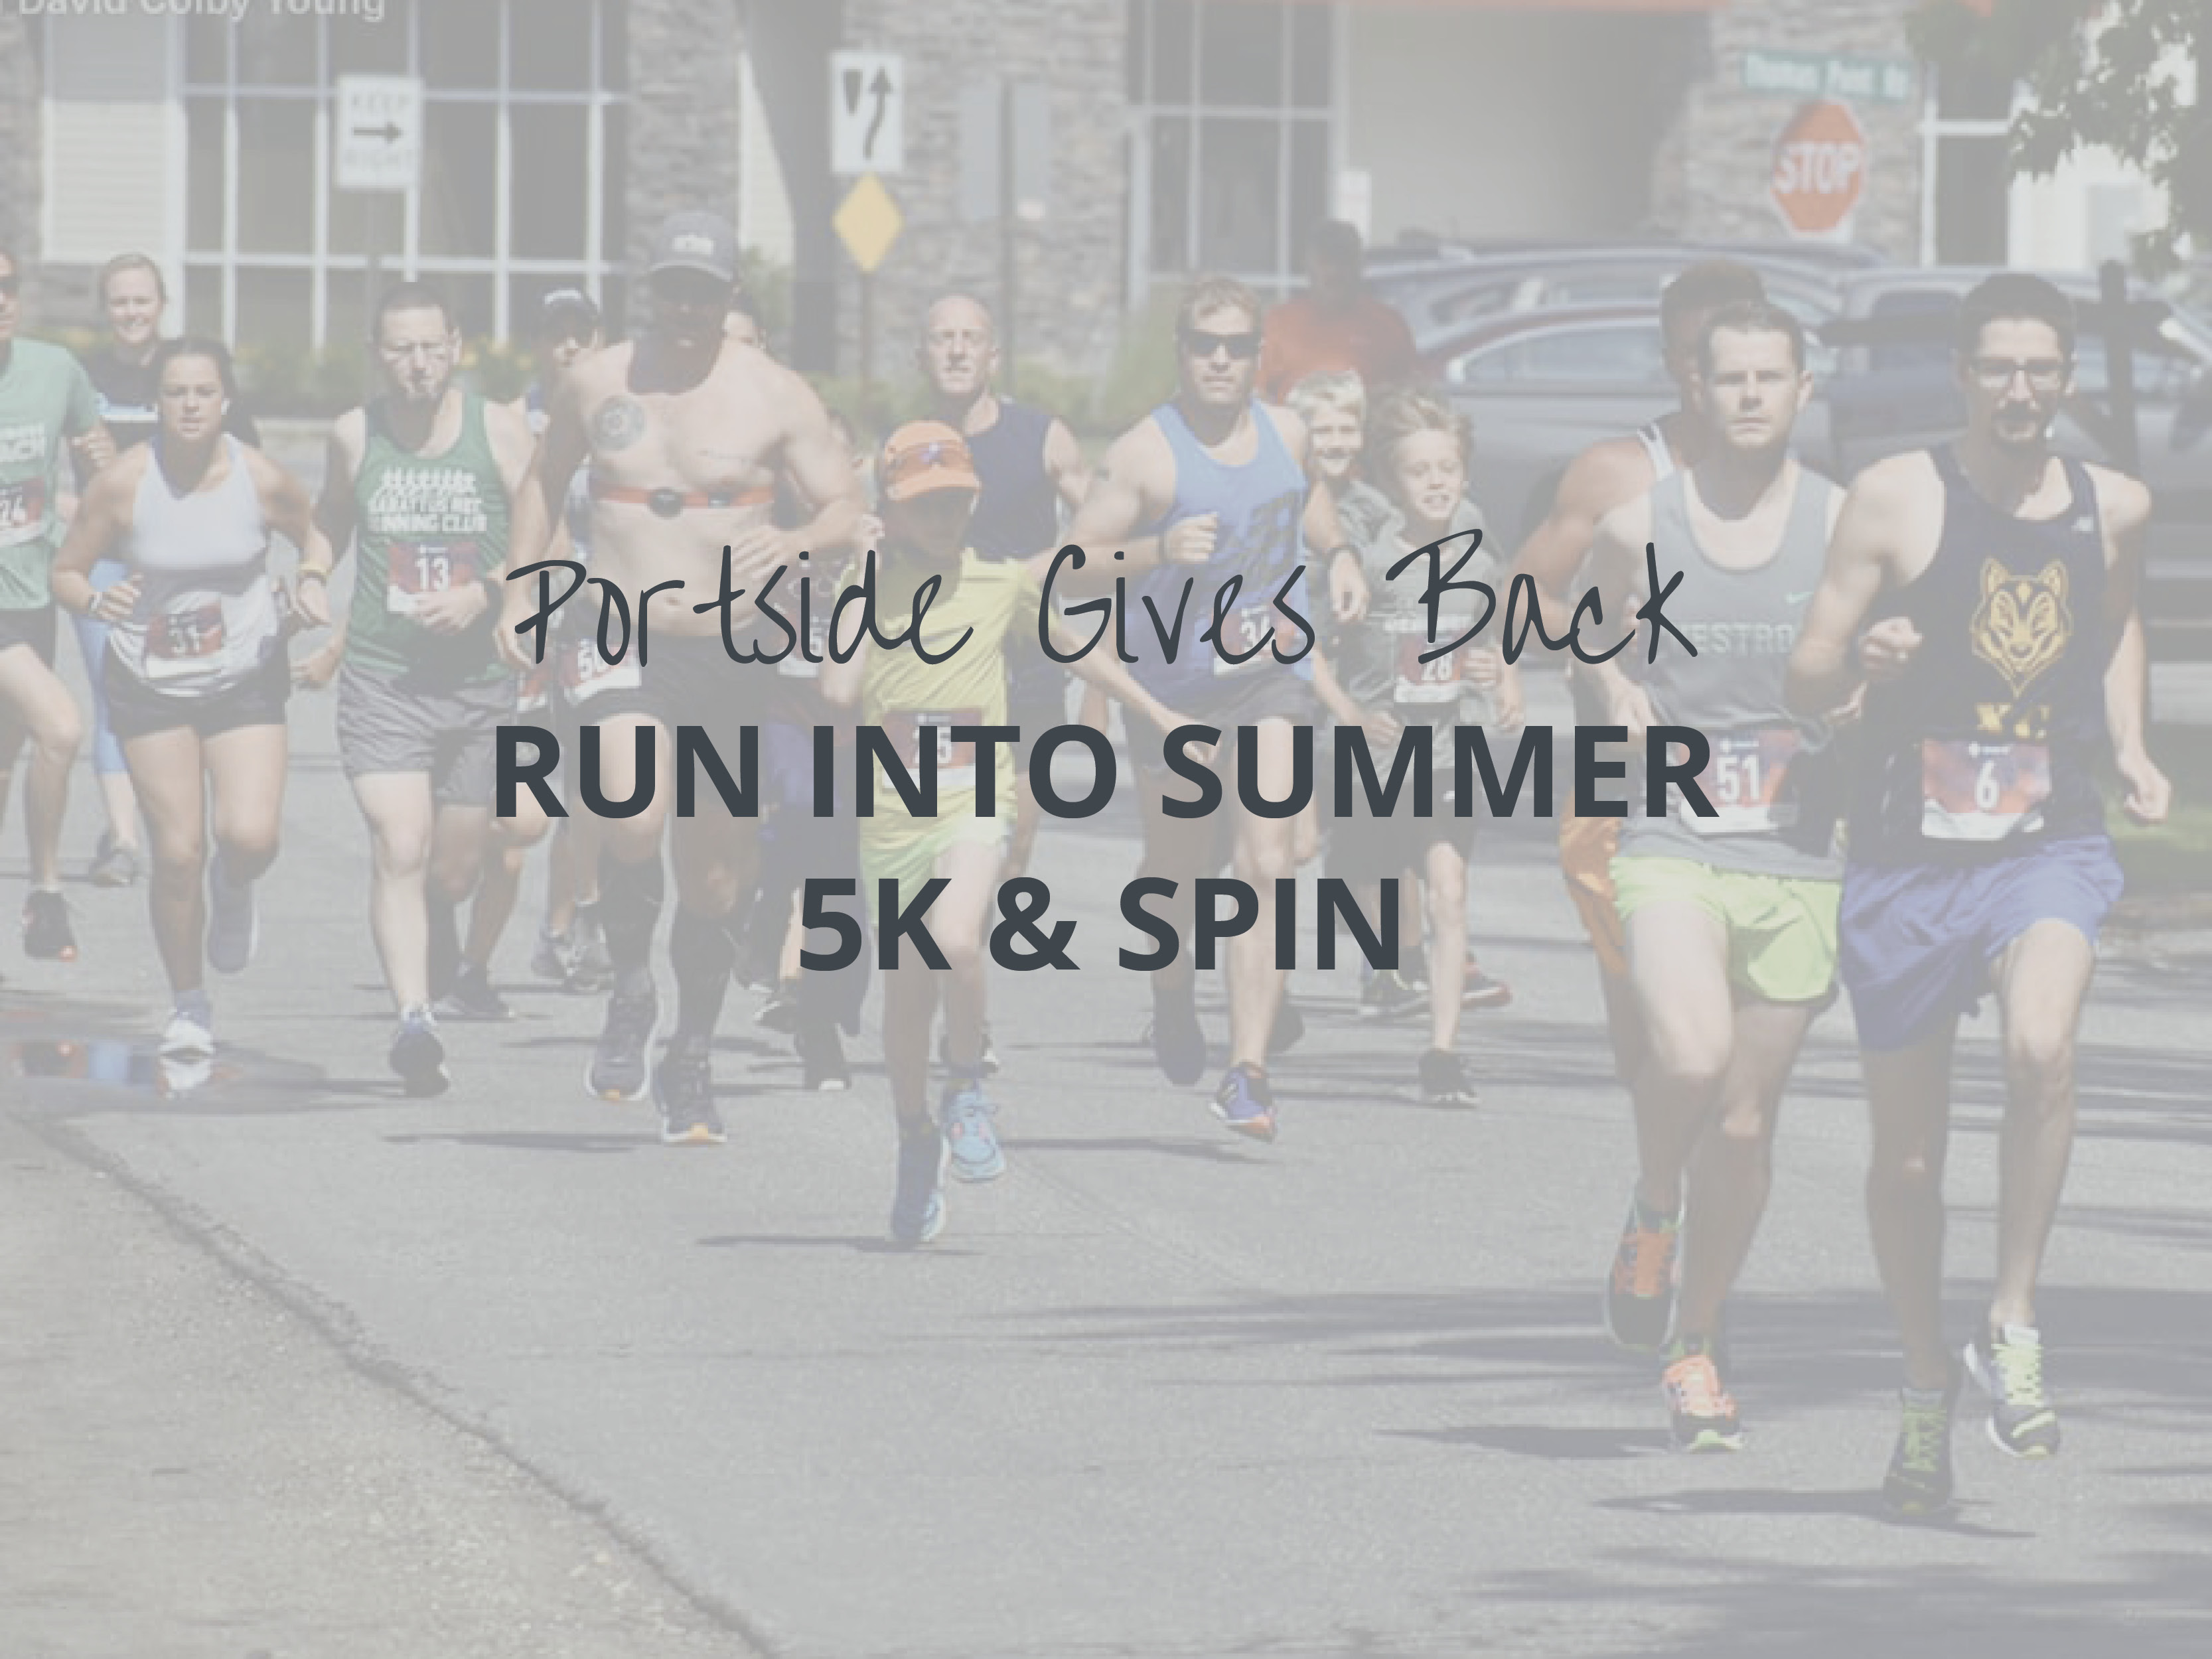 Portside gives back run into summer 5k event